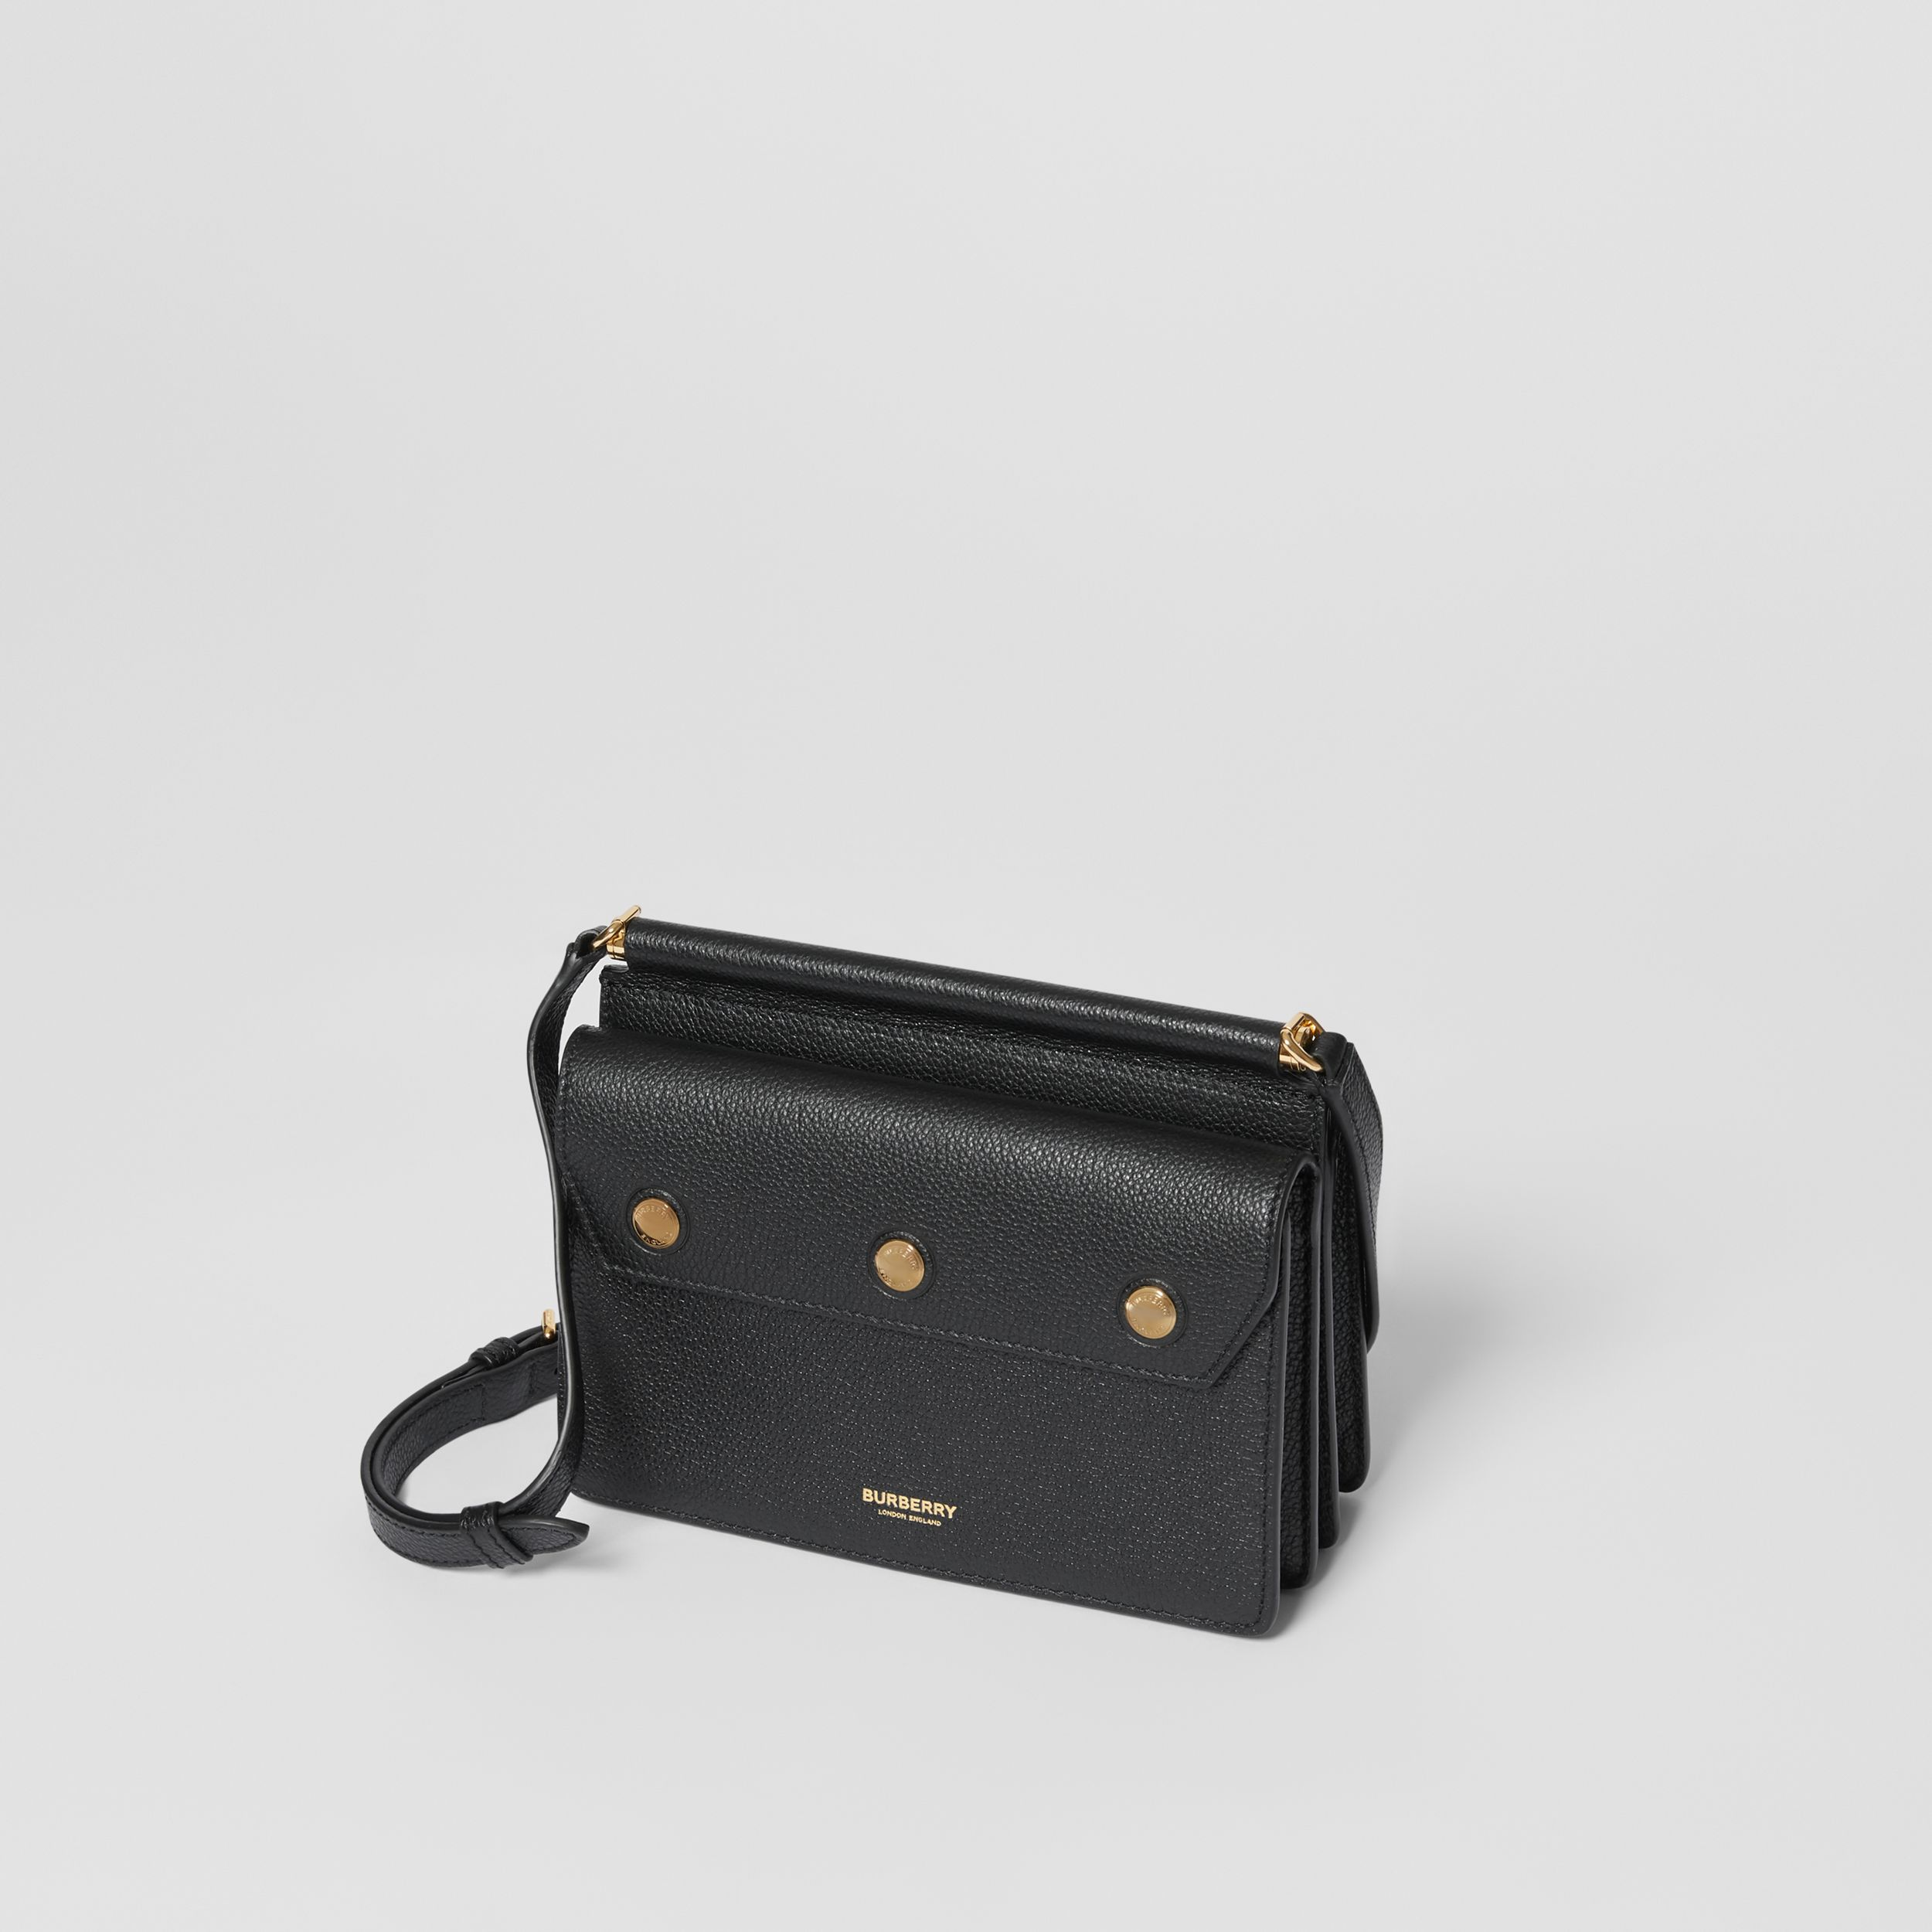 Mini Leather Title Bag with Pocket Detail in Black - Women | Burberry - 4